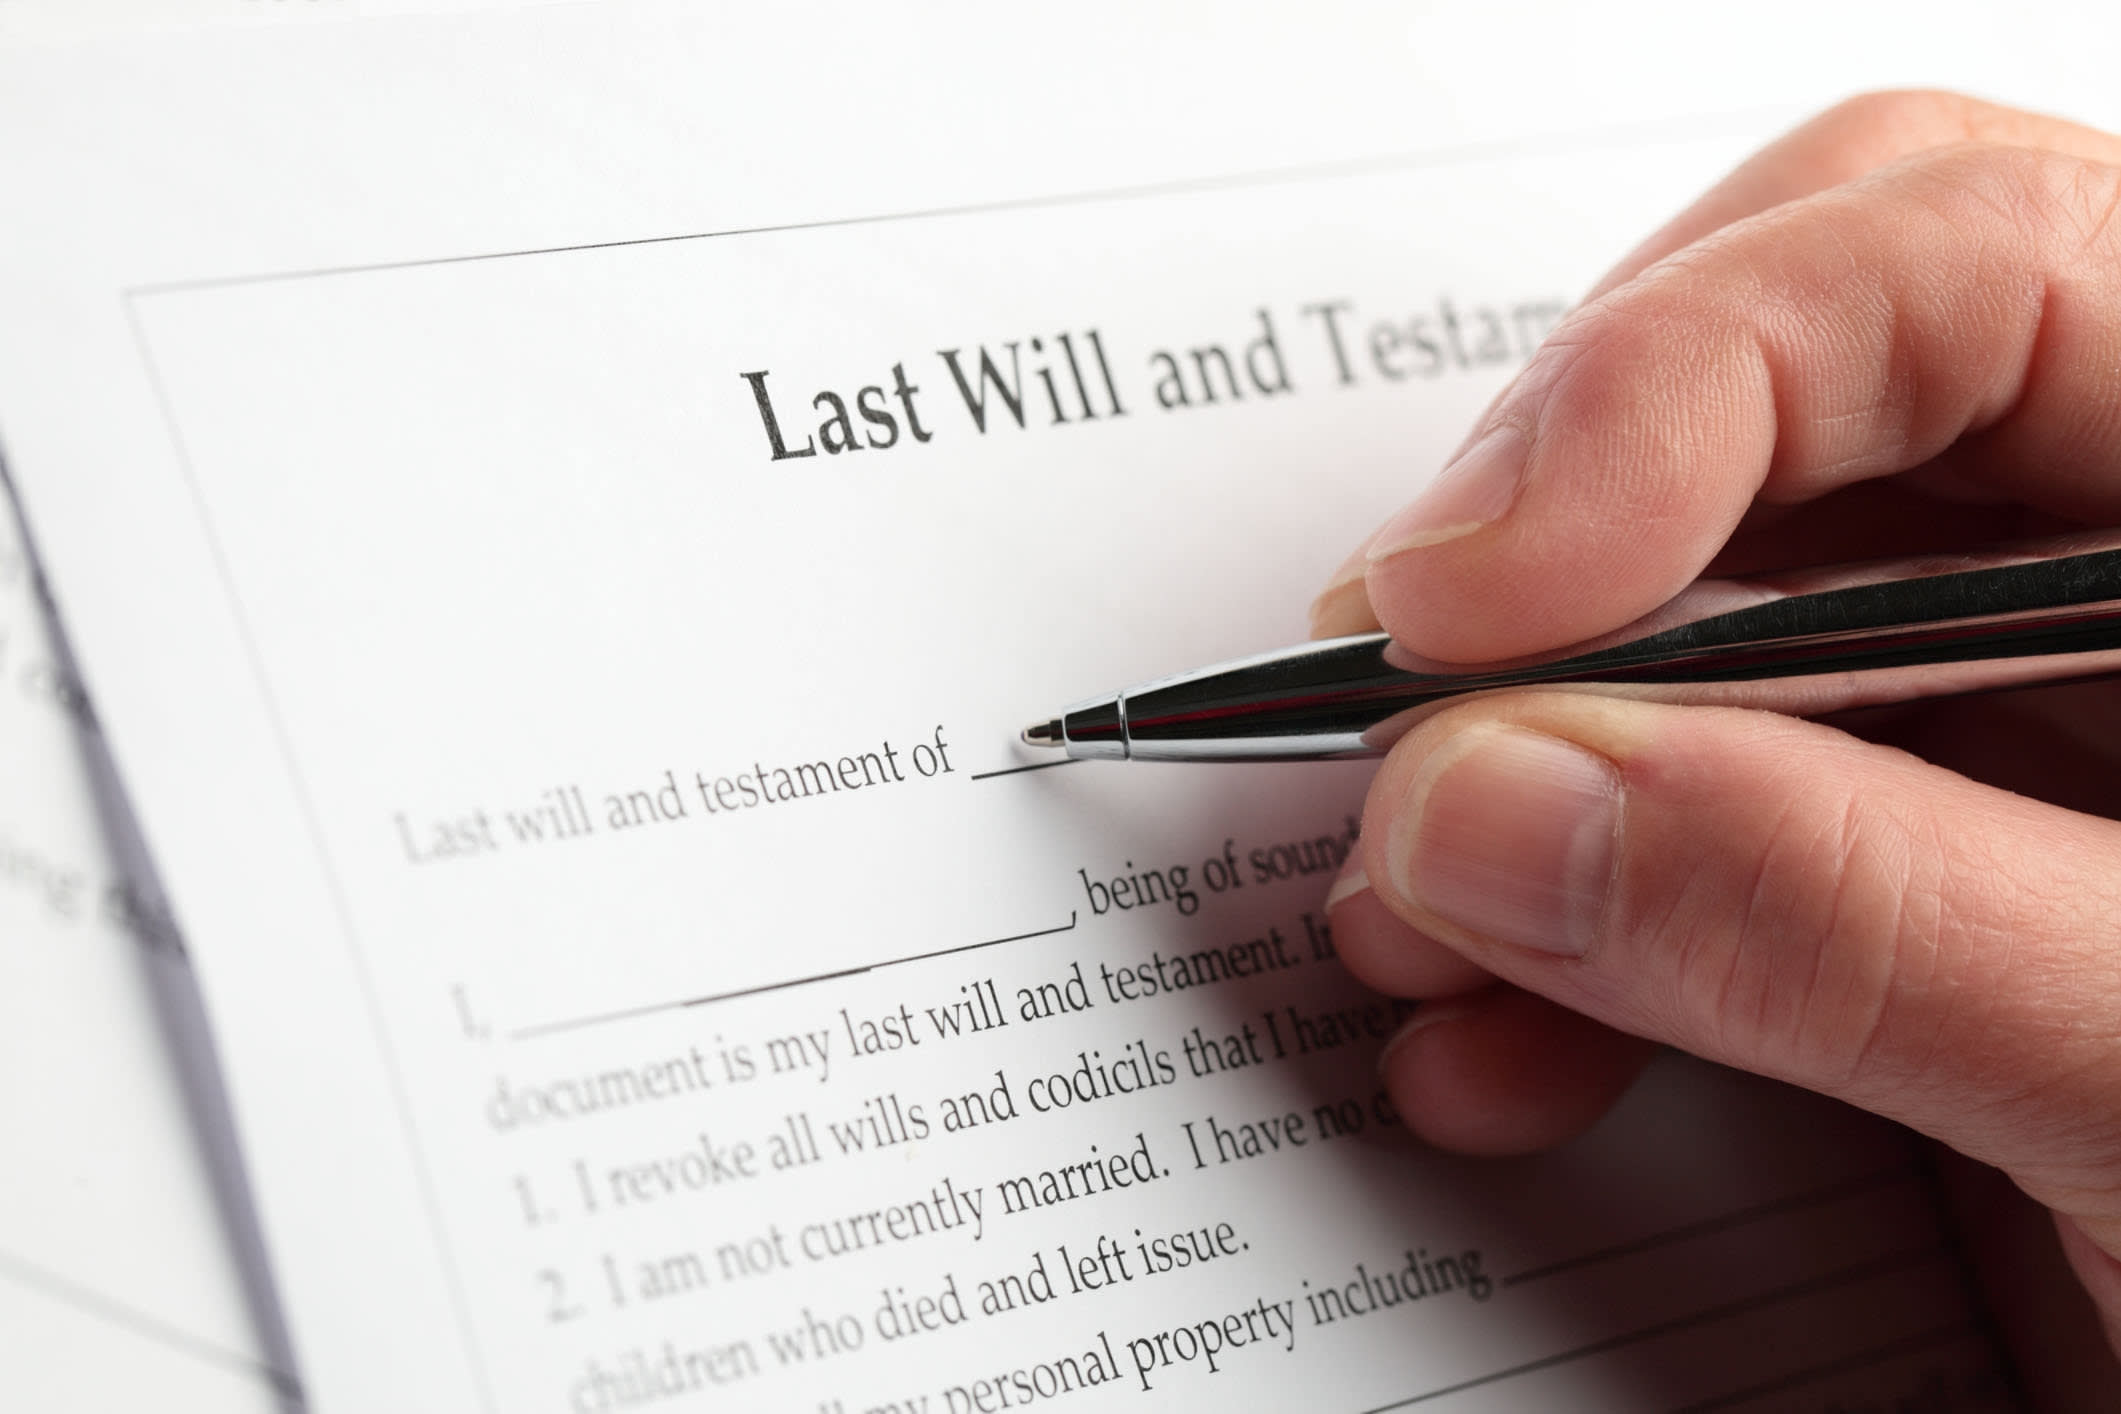 Signing a will during the pandemic